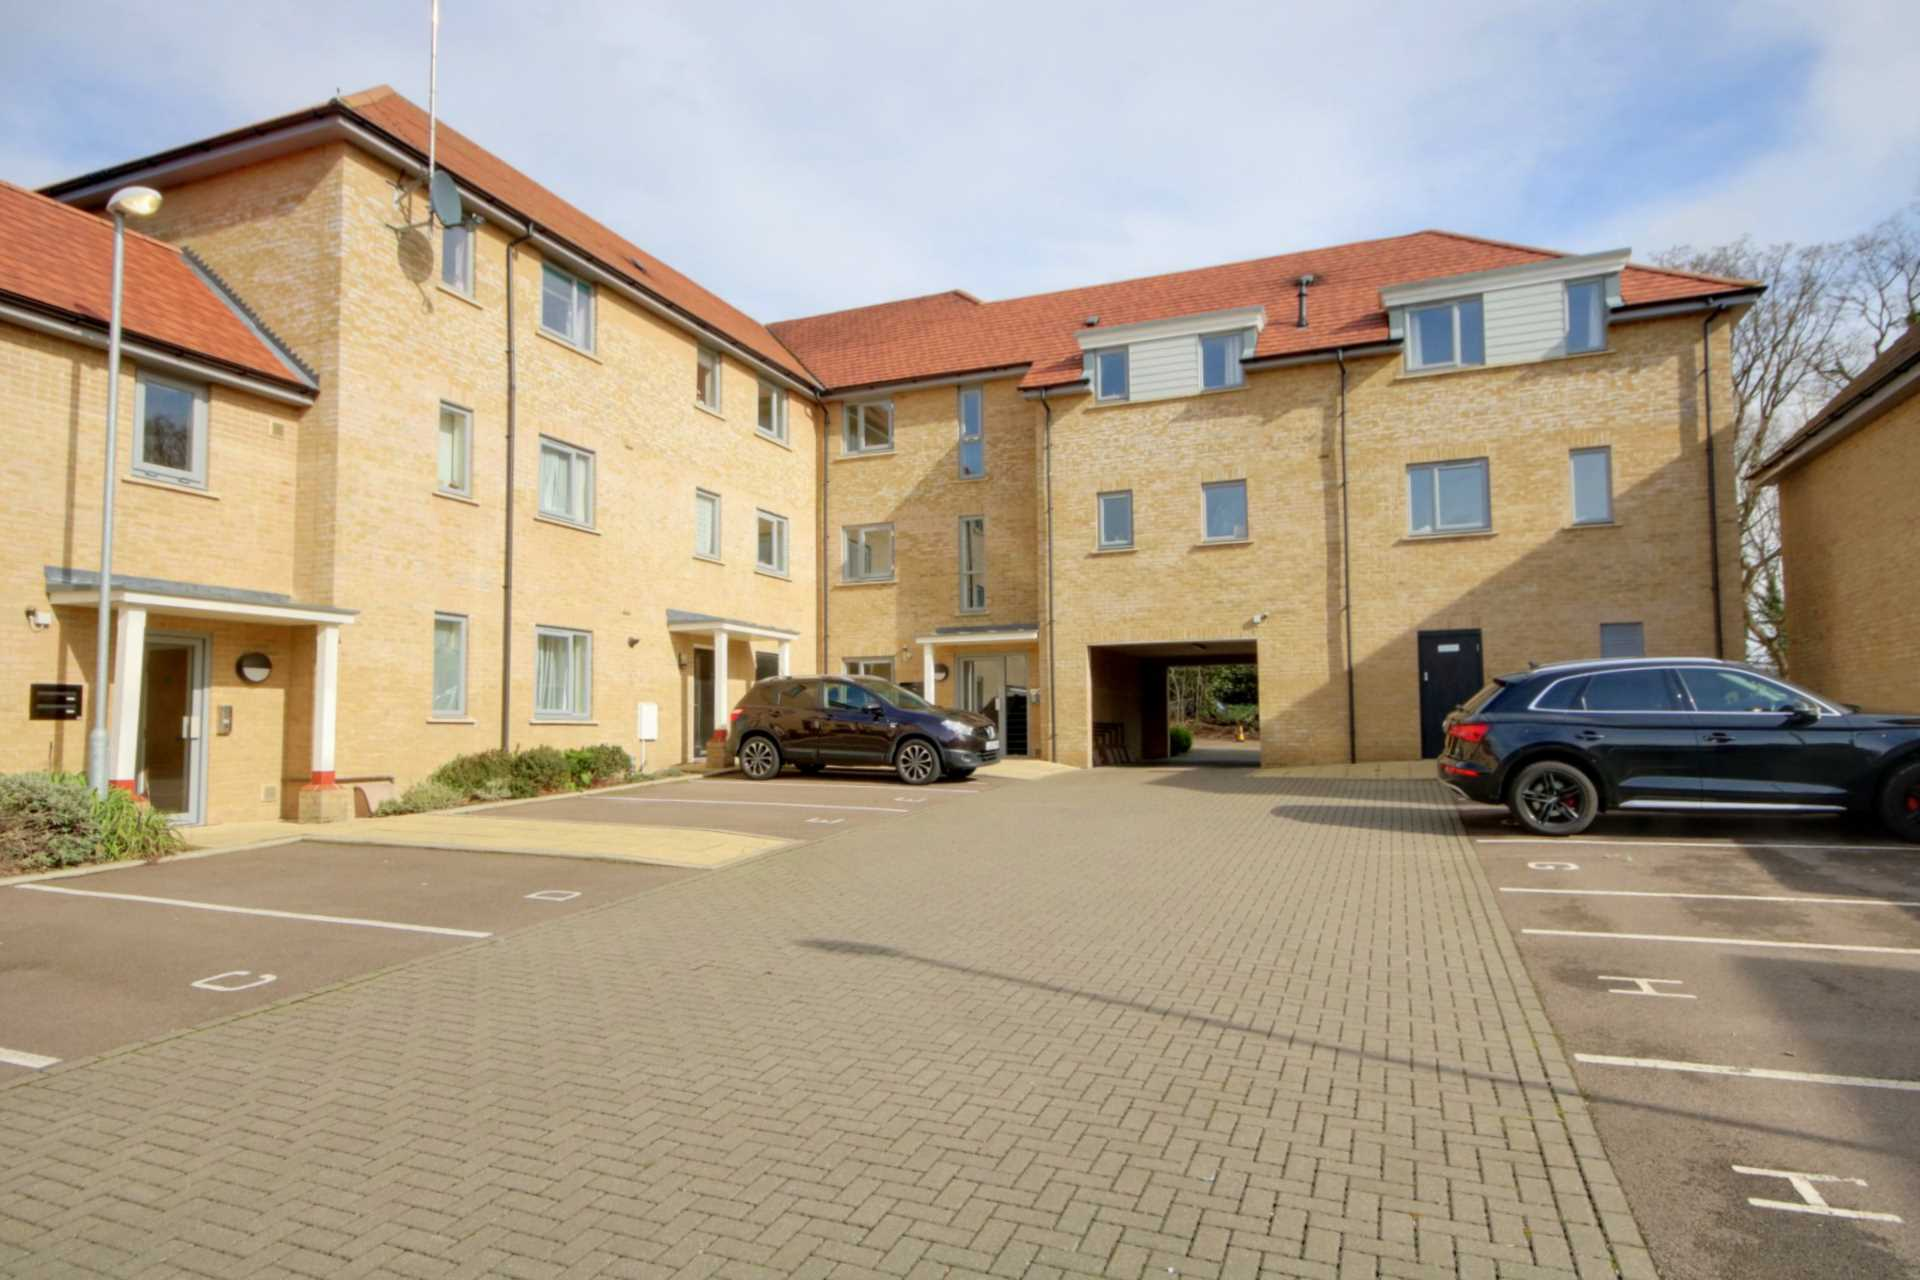 2 DOUBLE BED APARTMENT WITH 2 PARKING SPACES ON MODERN DEVELOPMENT., Image 11